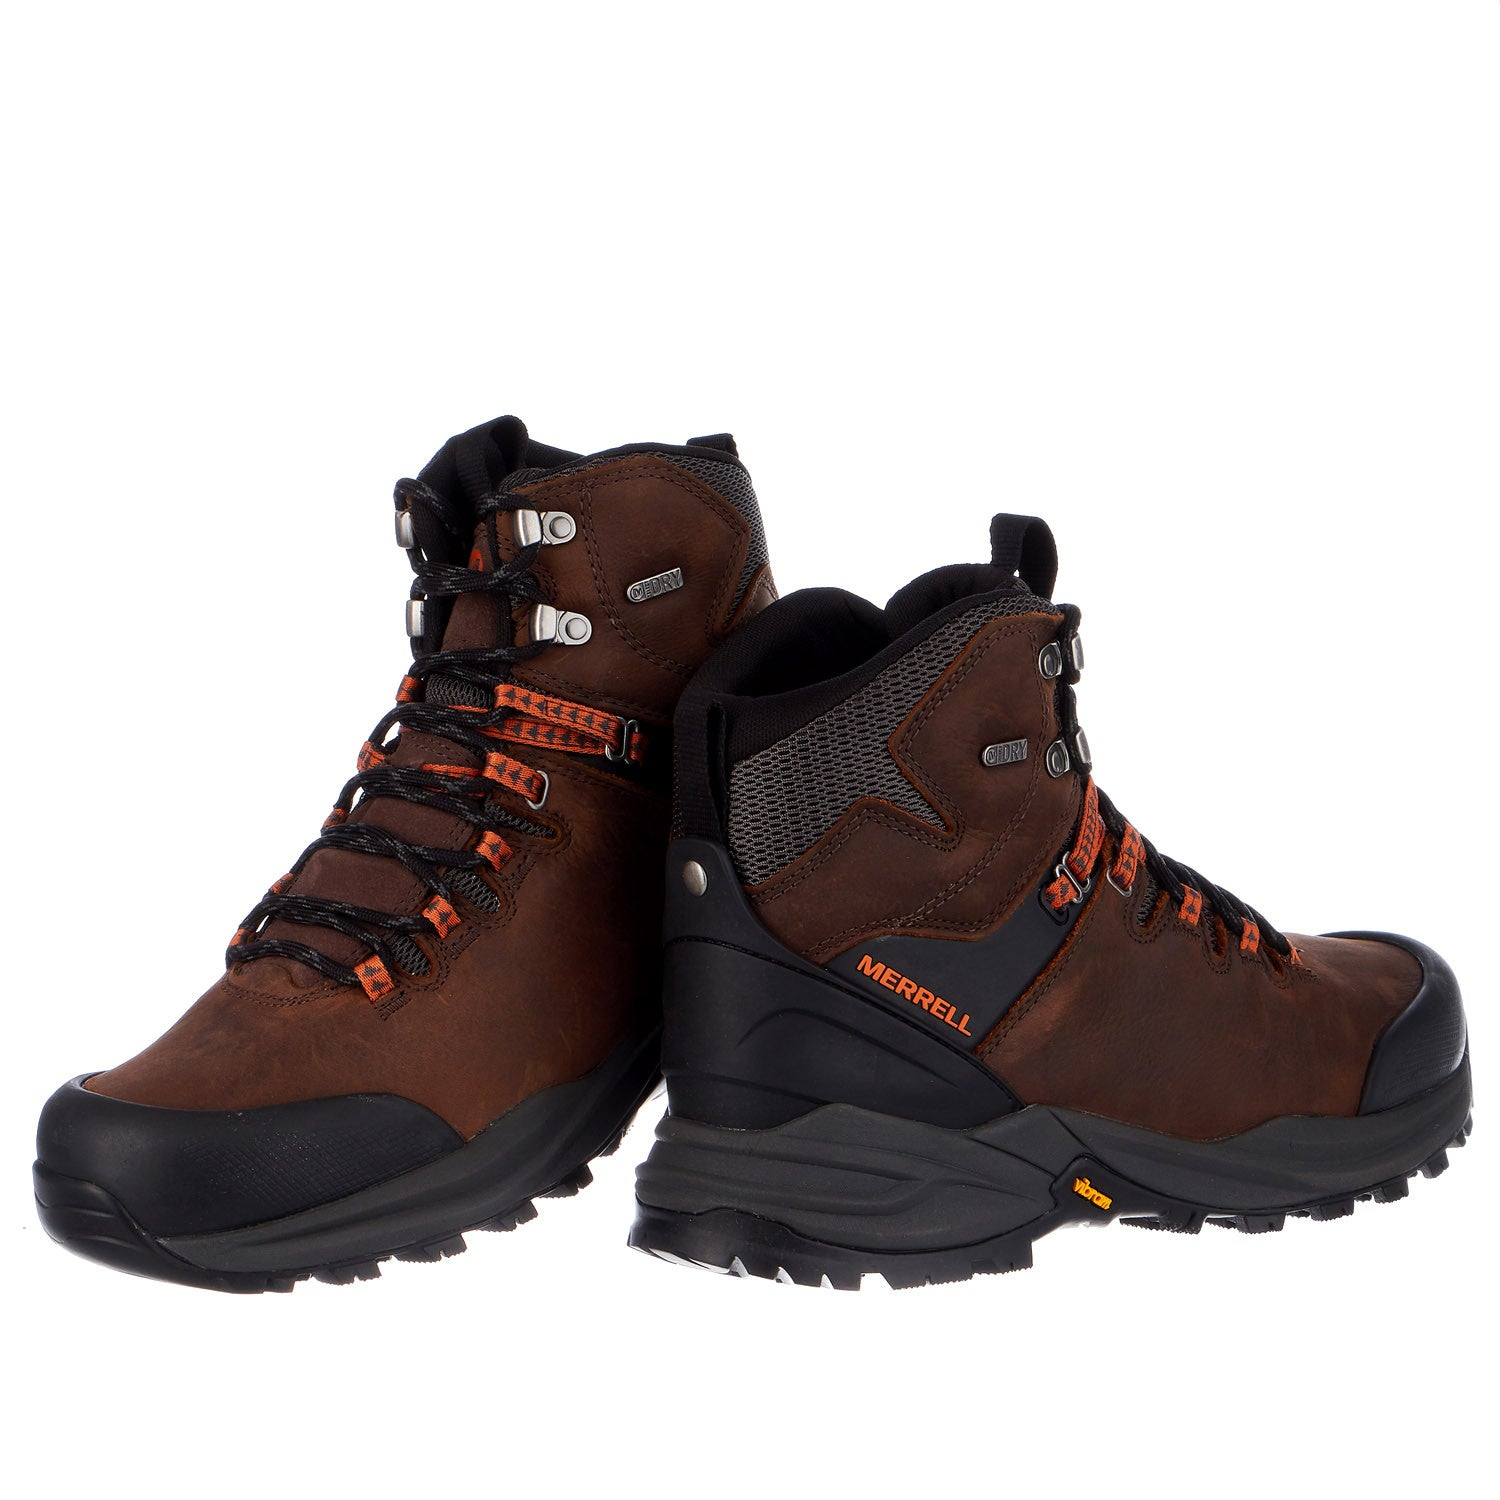 4a735c04976 Merrell Phaserbound Waterproof - Men's